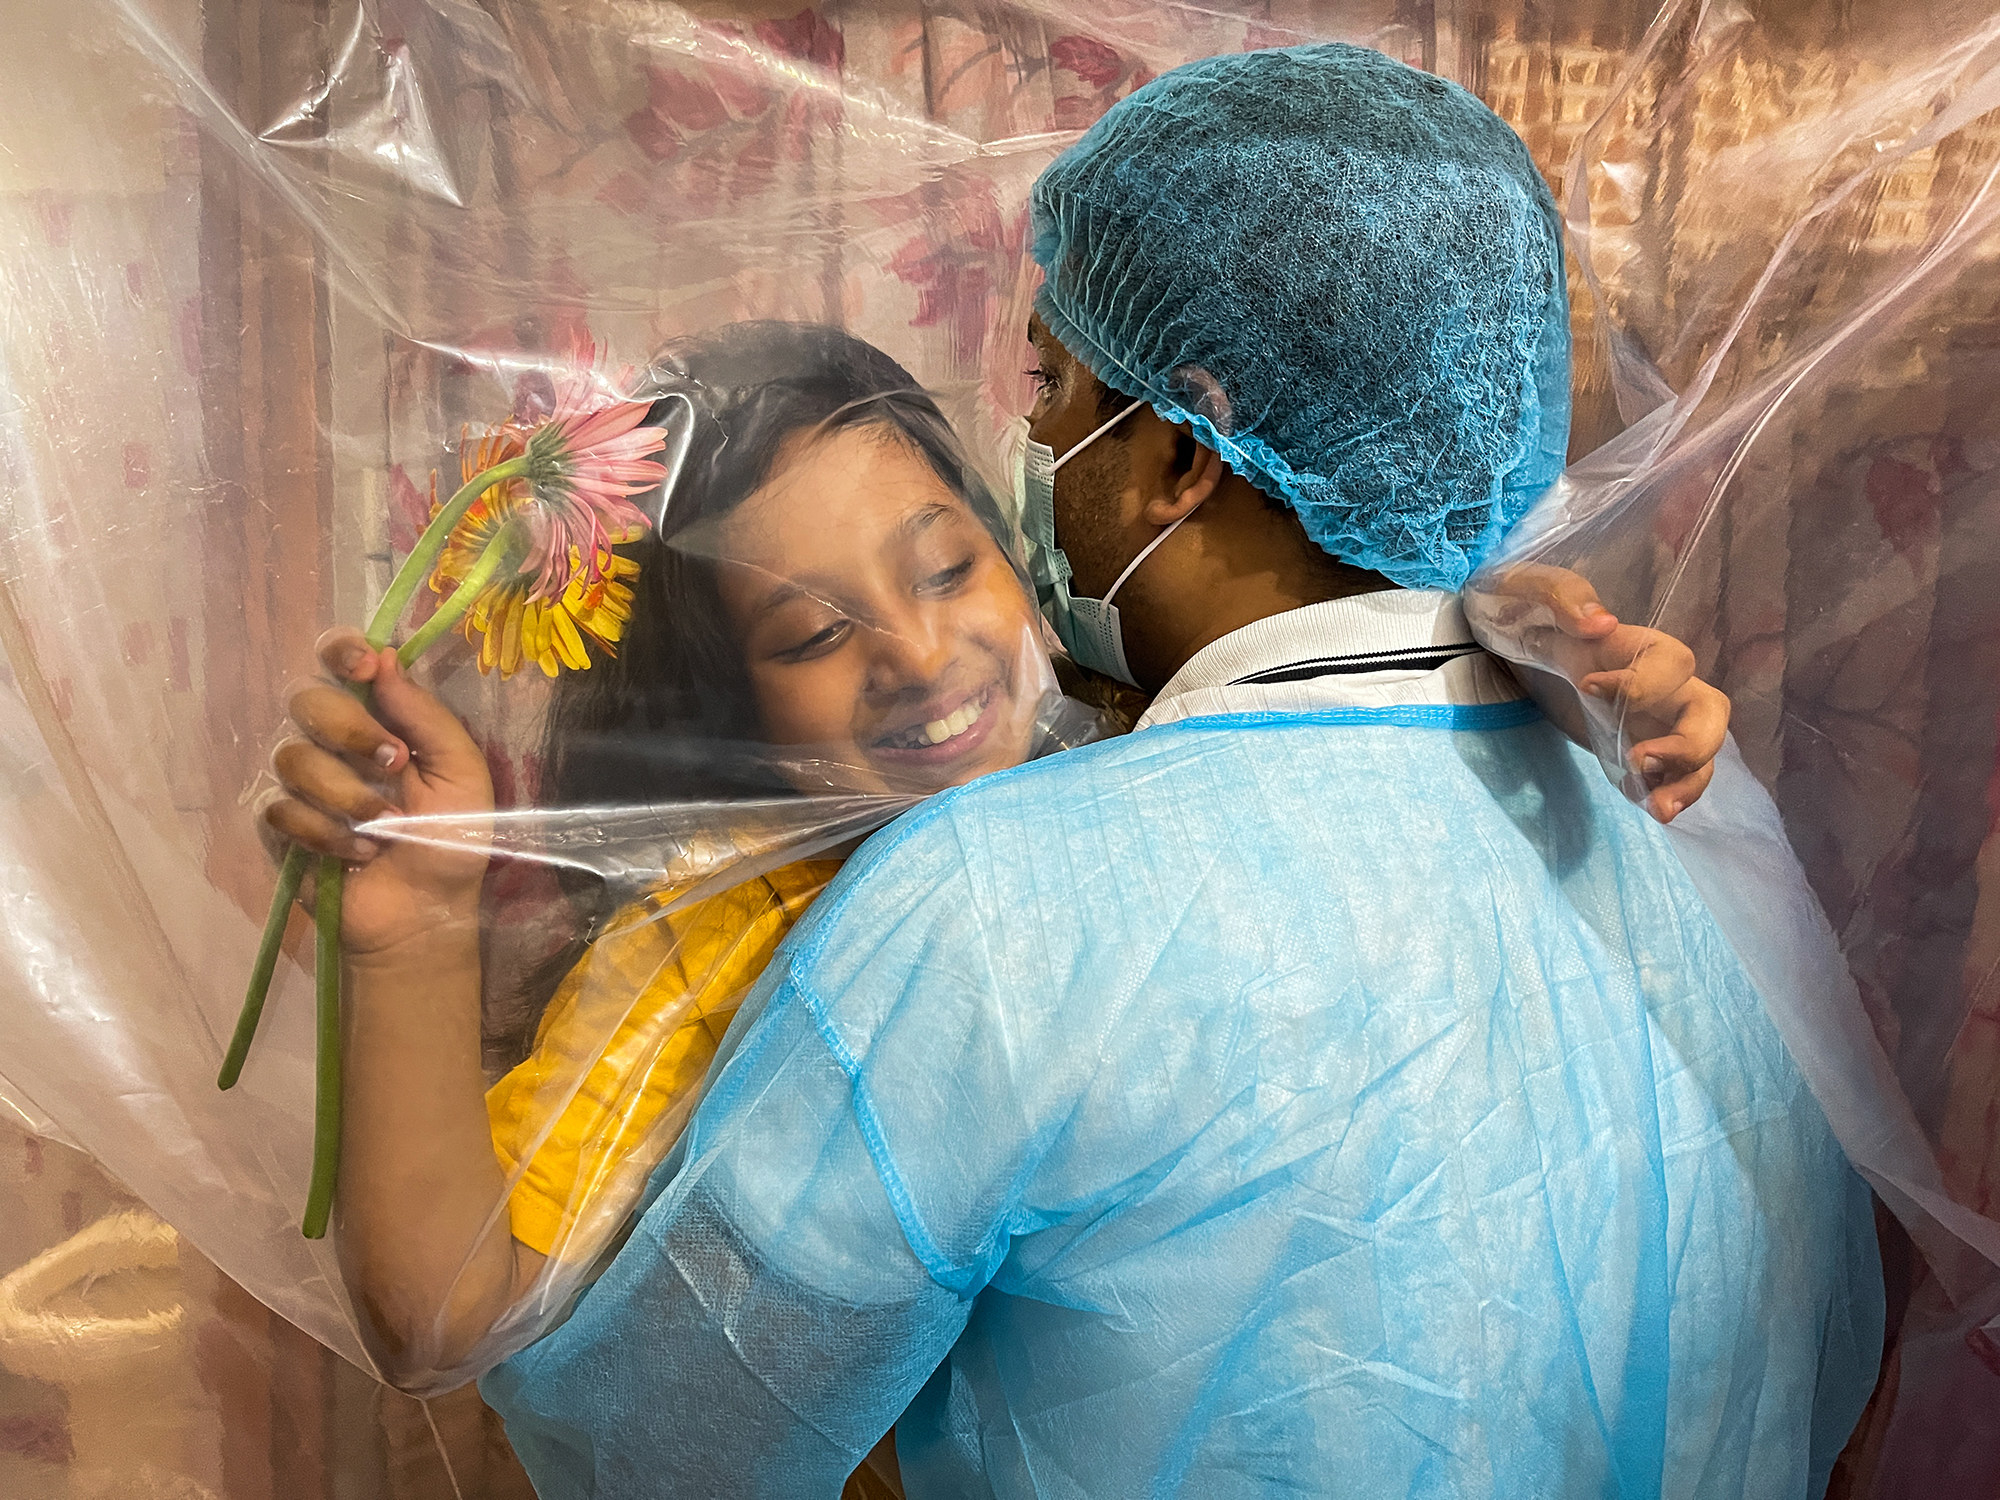 A smiling girl holding flowers hugs a doctor in scrubs through plastic